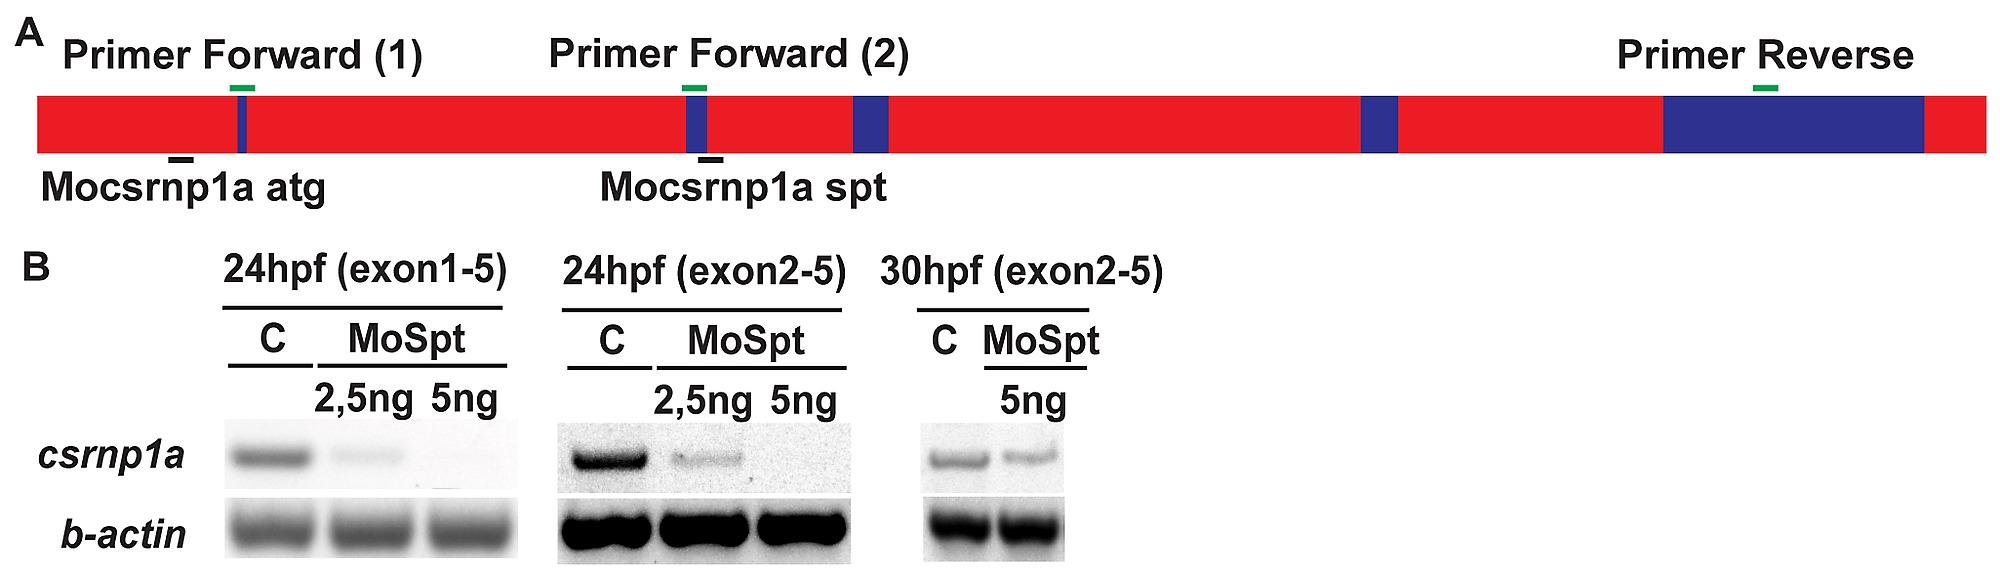 Csrnp1a Is Necessary For The Development Of Primitive Hematopoiesis 1996 B100 Fuse Box Diagram Figshare